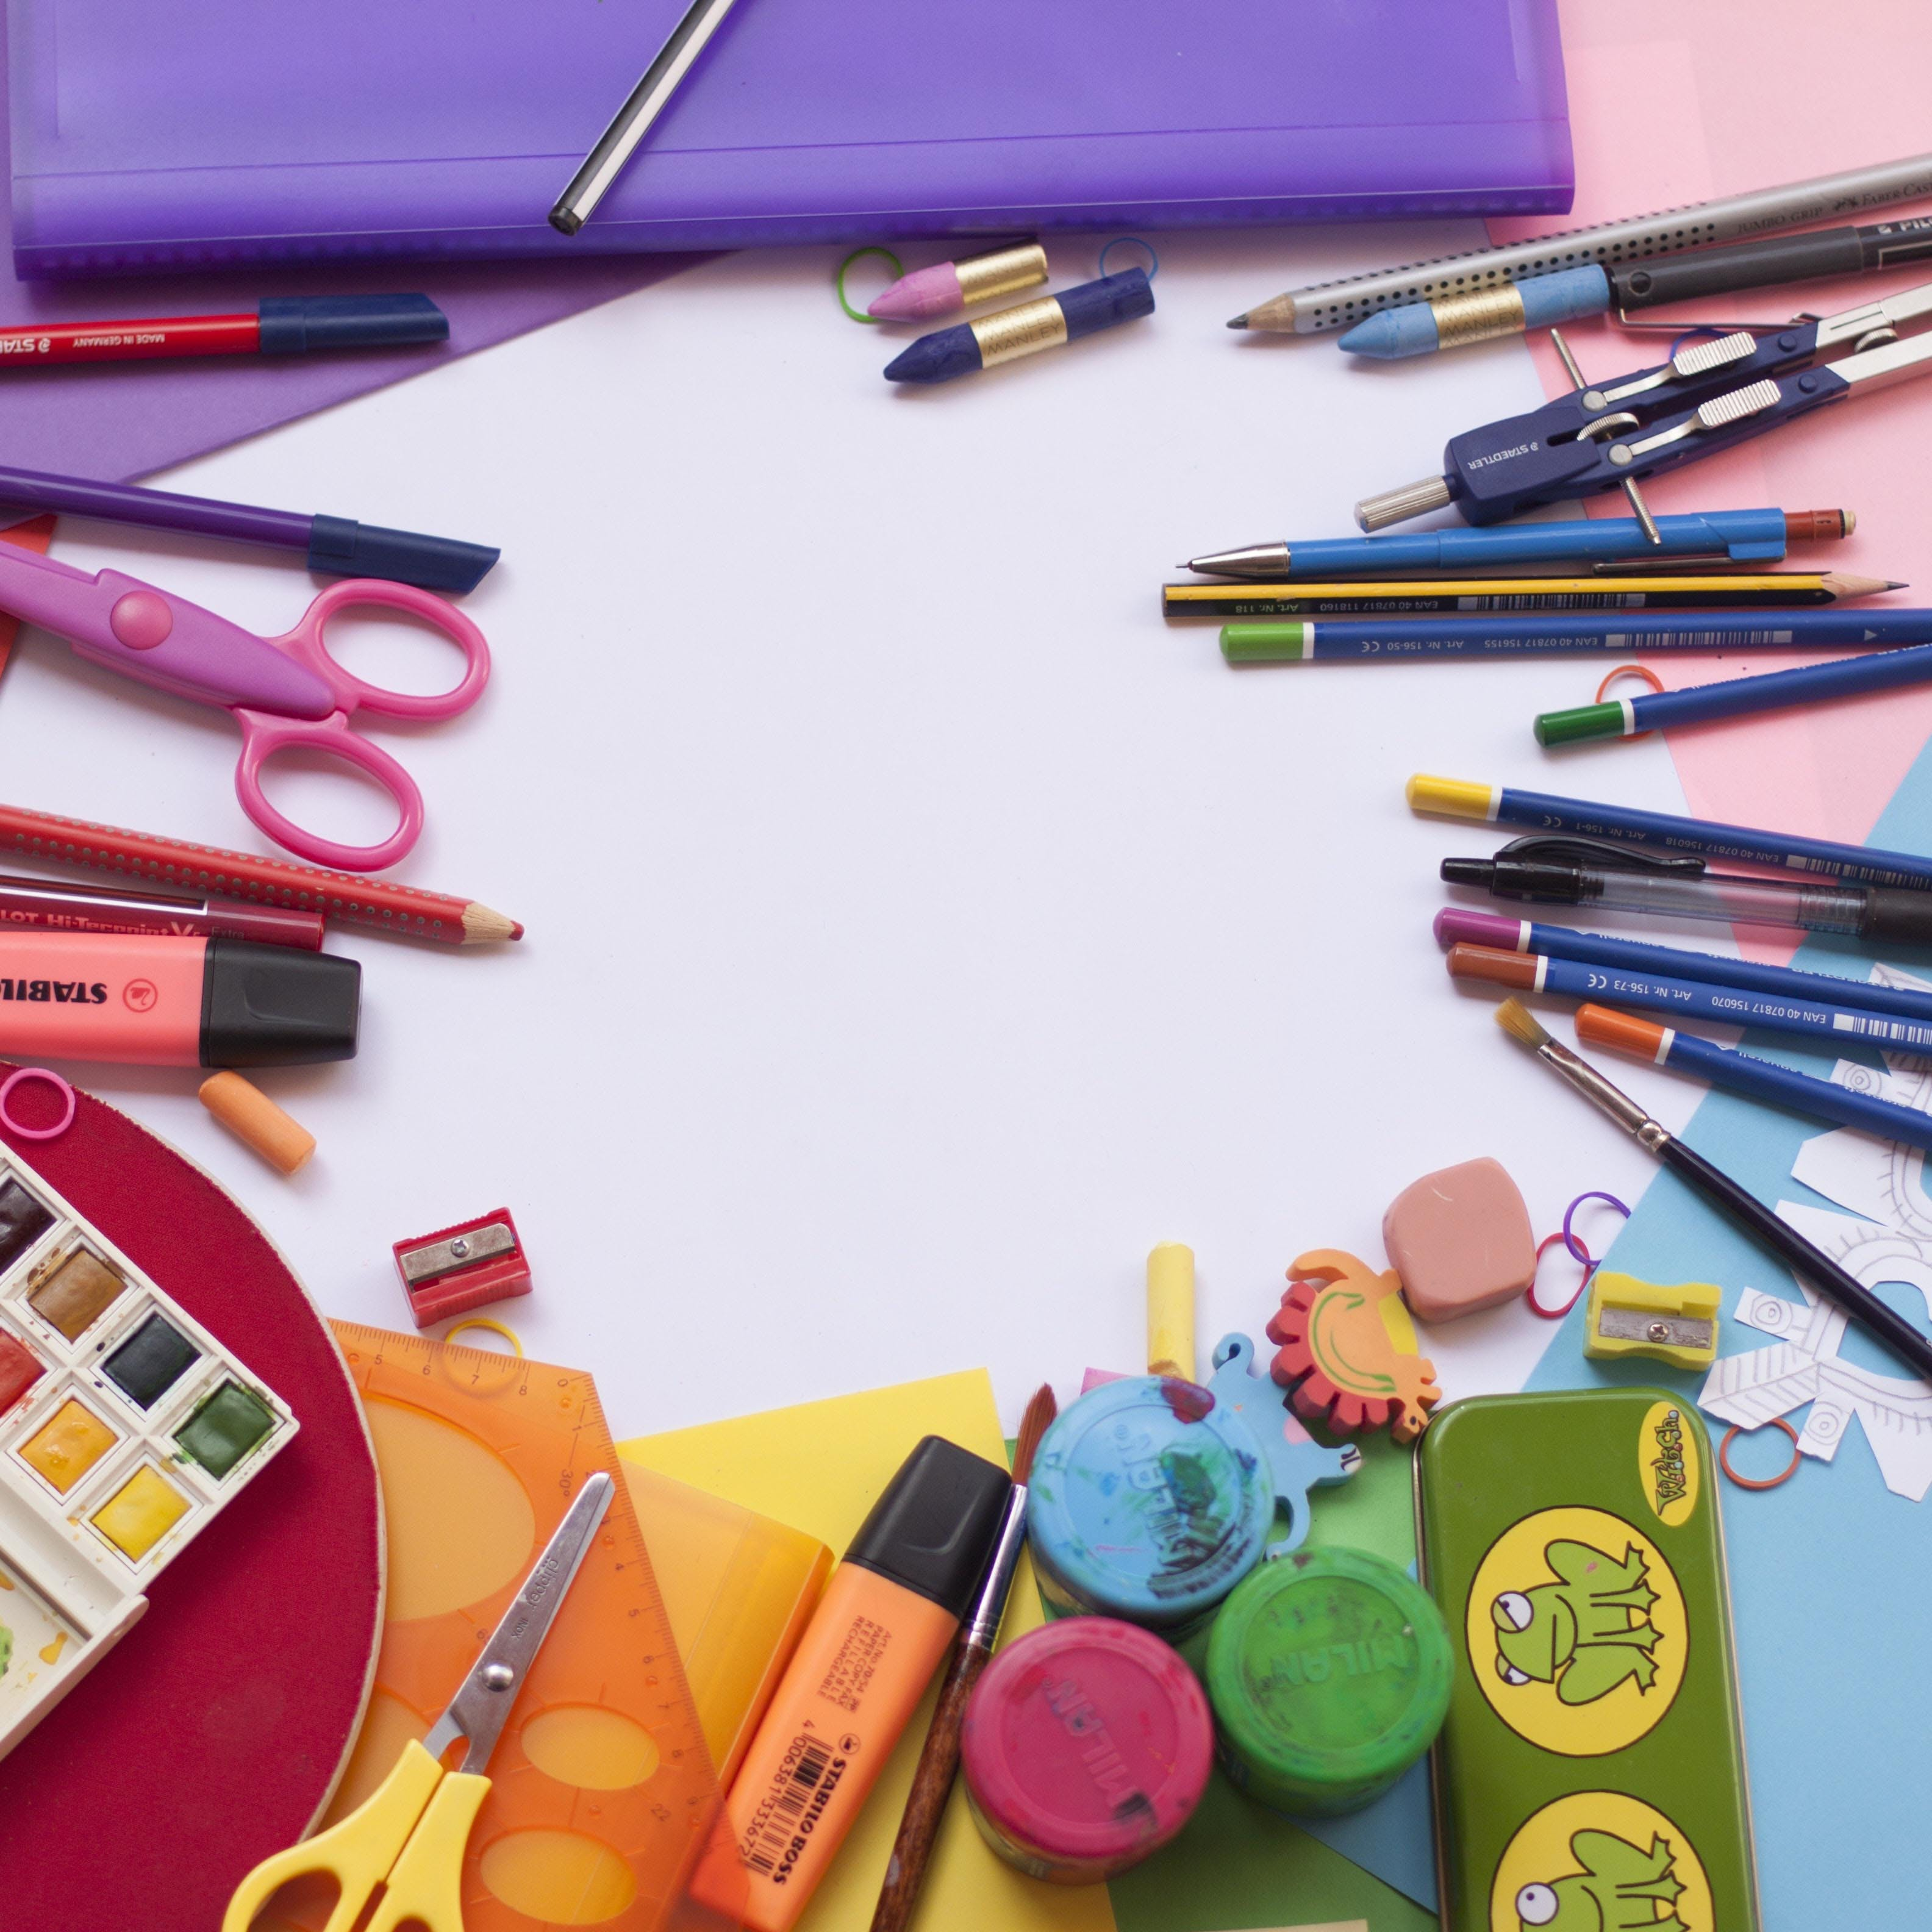 Stationery,Writing implement,Material property,Office supplies,Visual arts,Pen,Eraser,Art